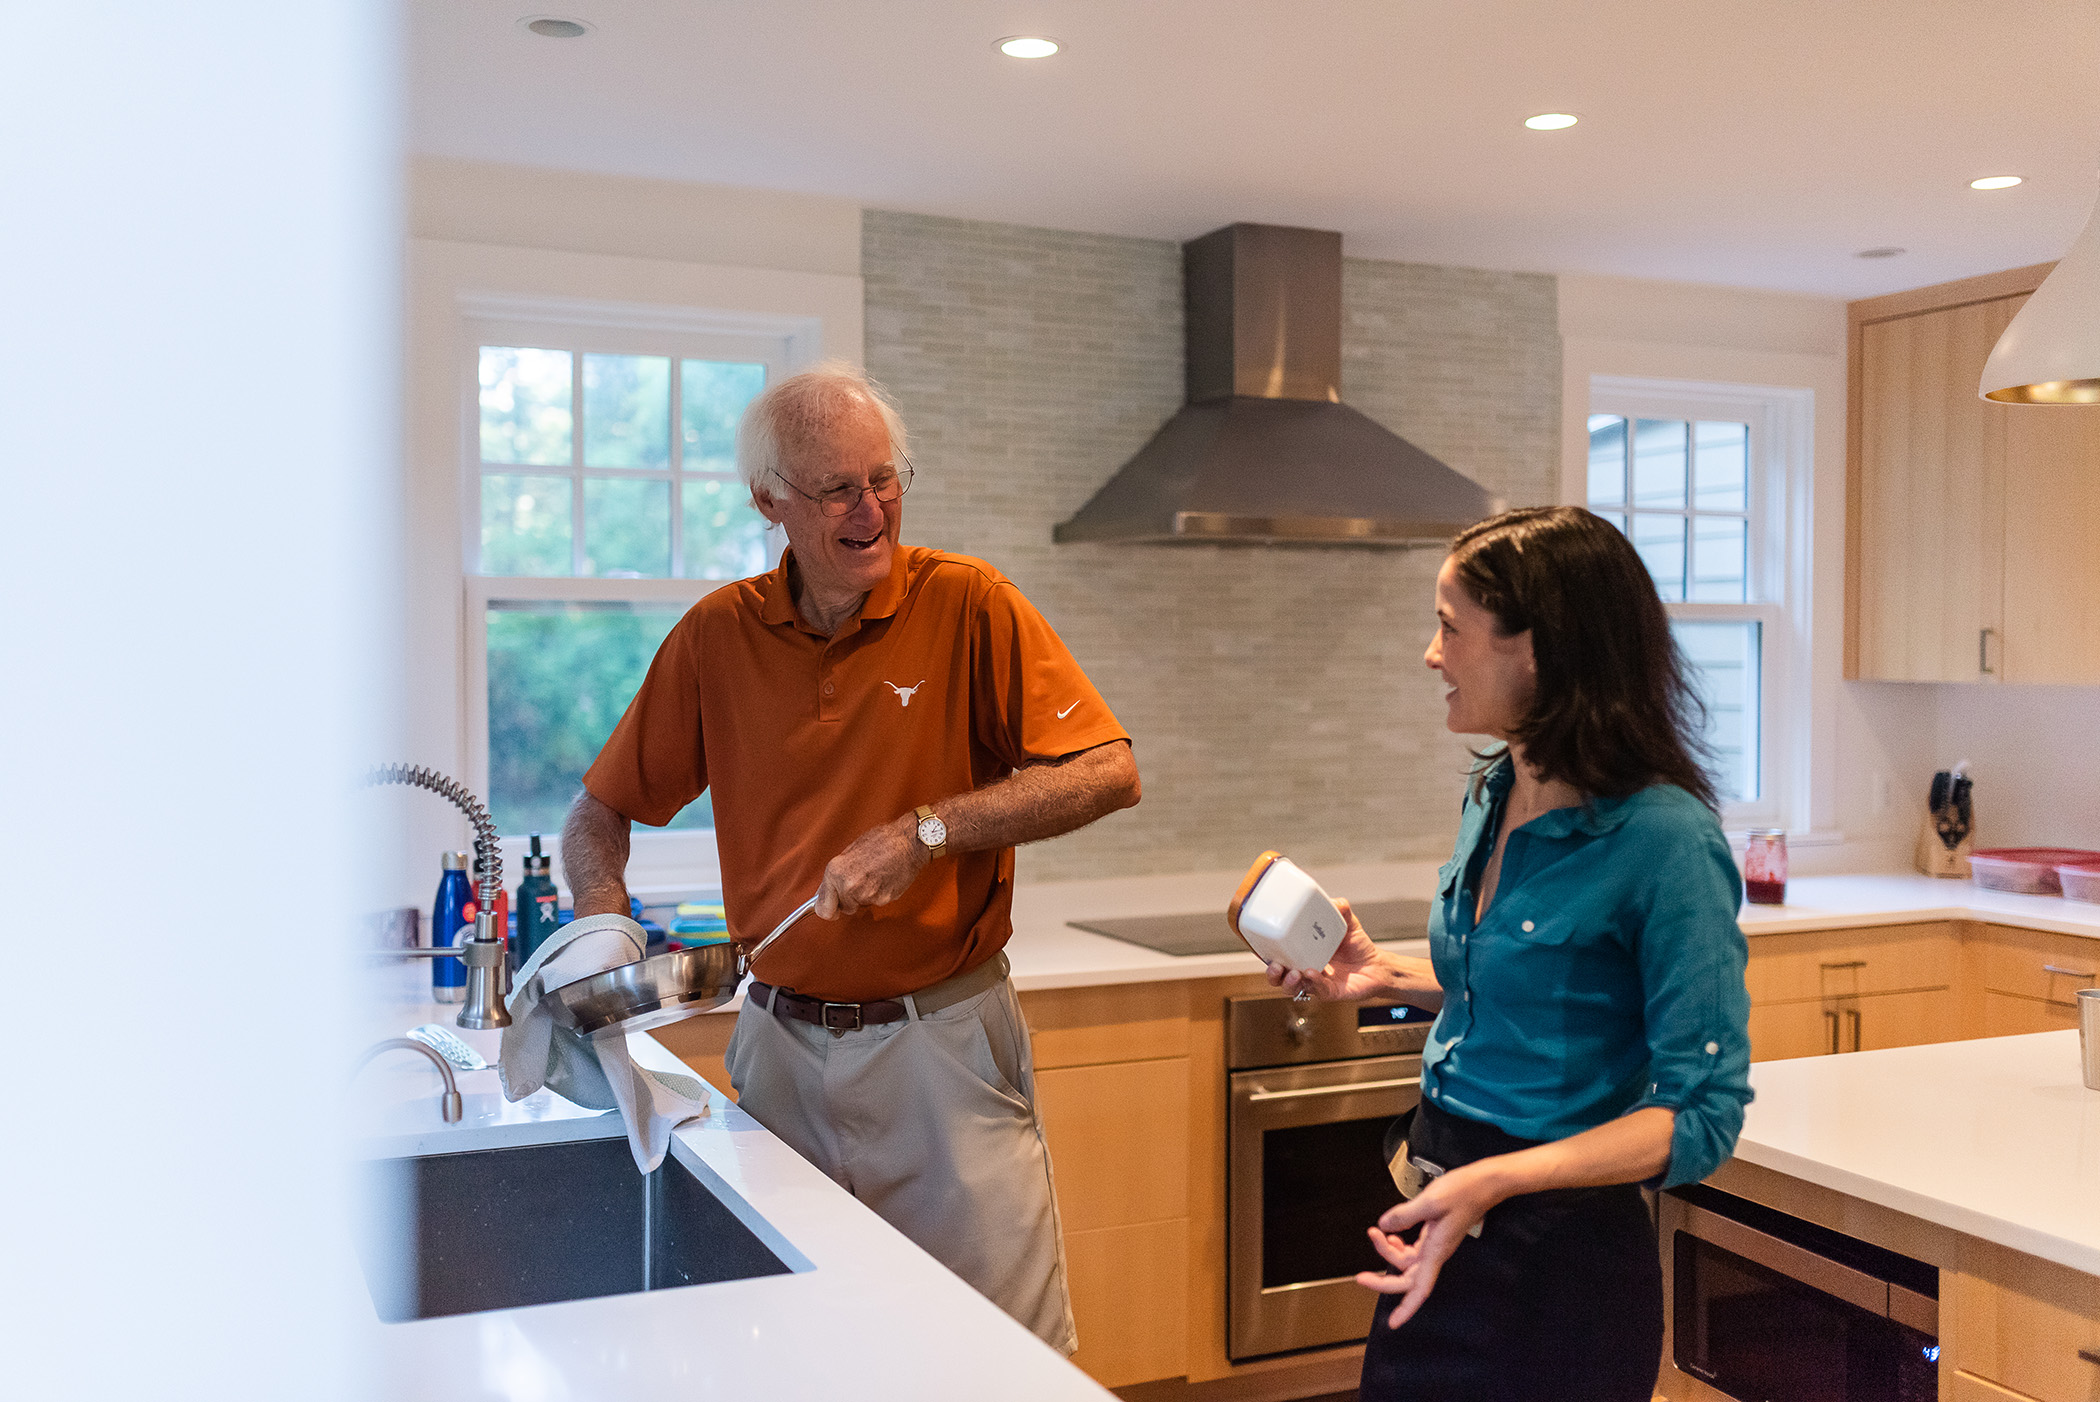 DC widow blog writer Marjorie Brimley in the kitchen with her father washing dishes